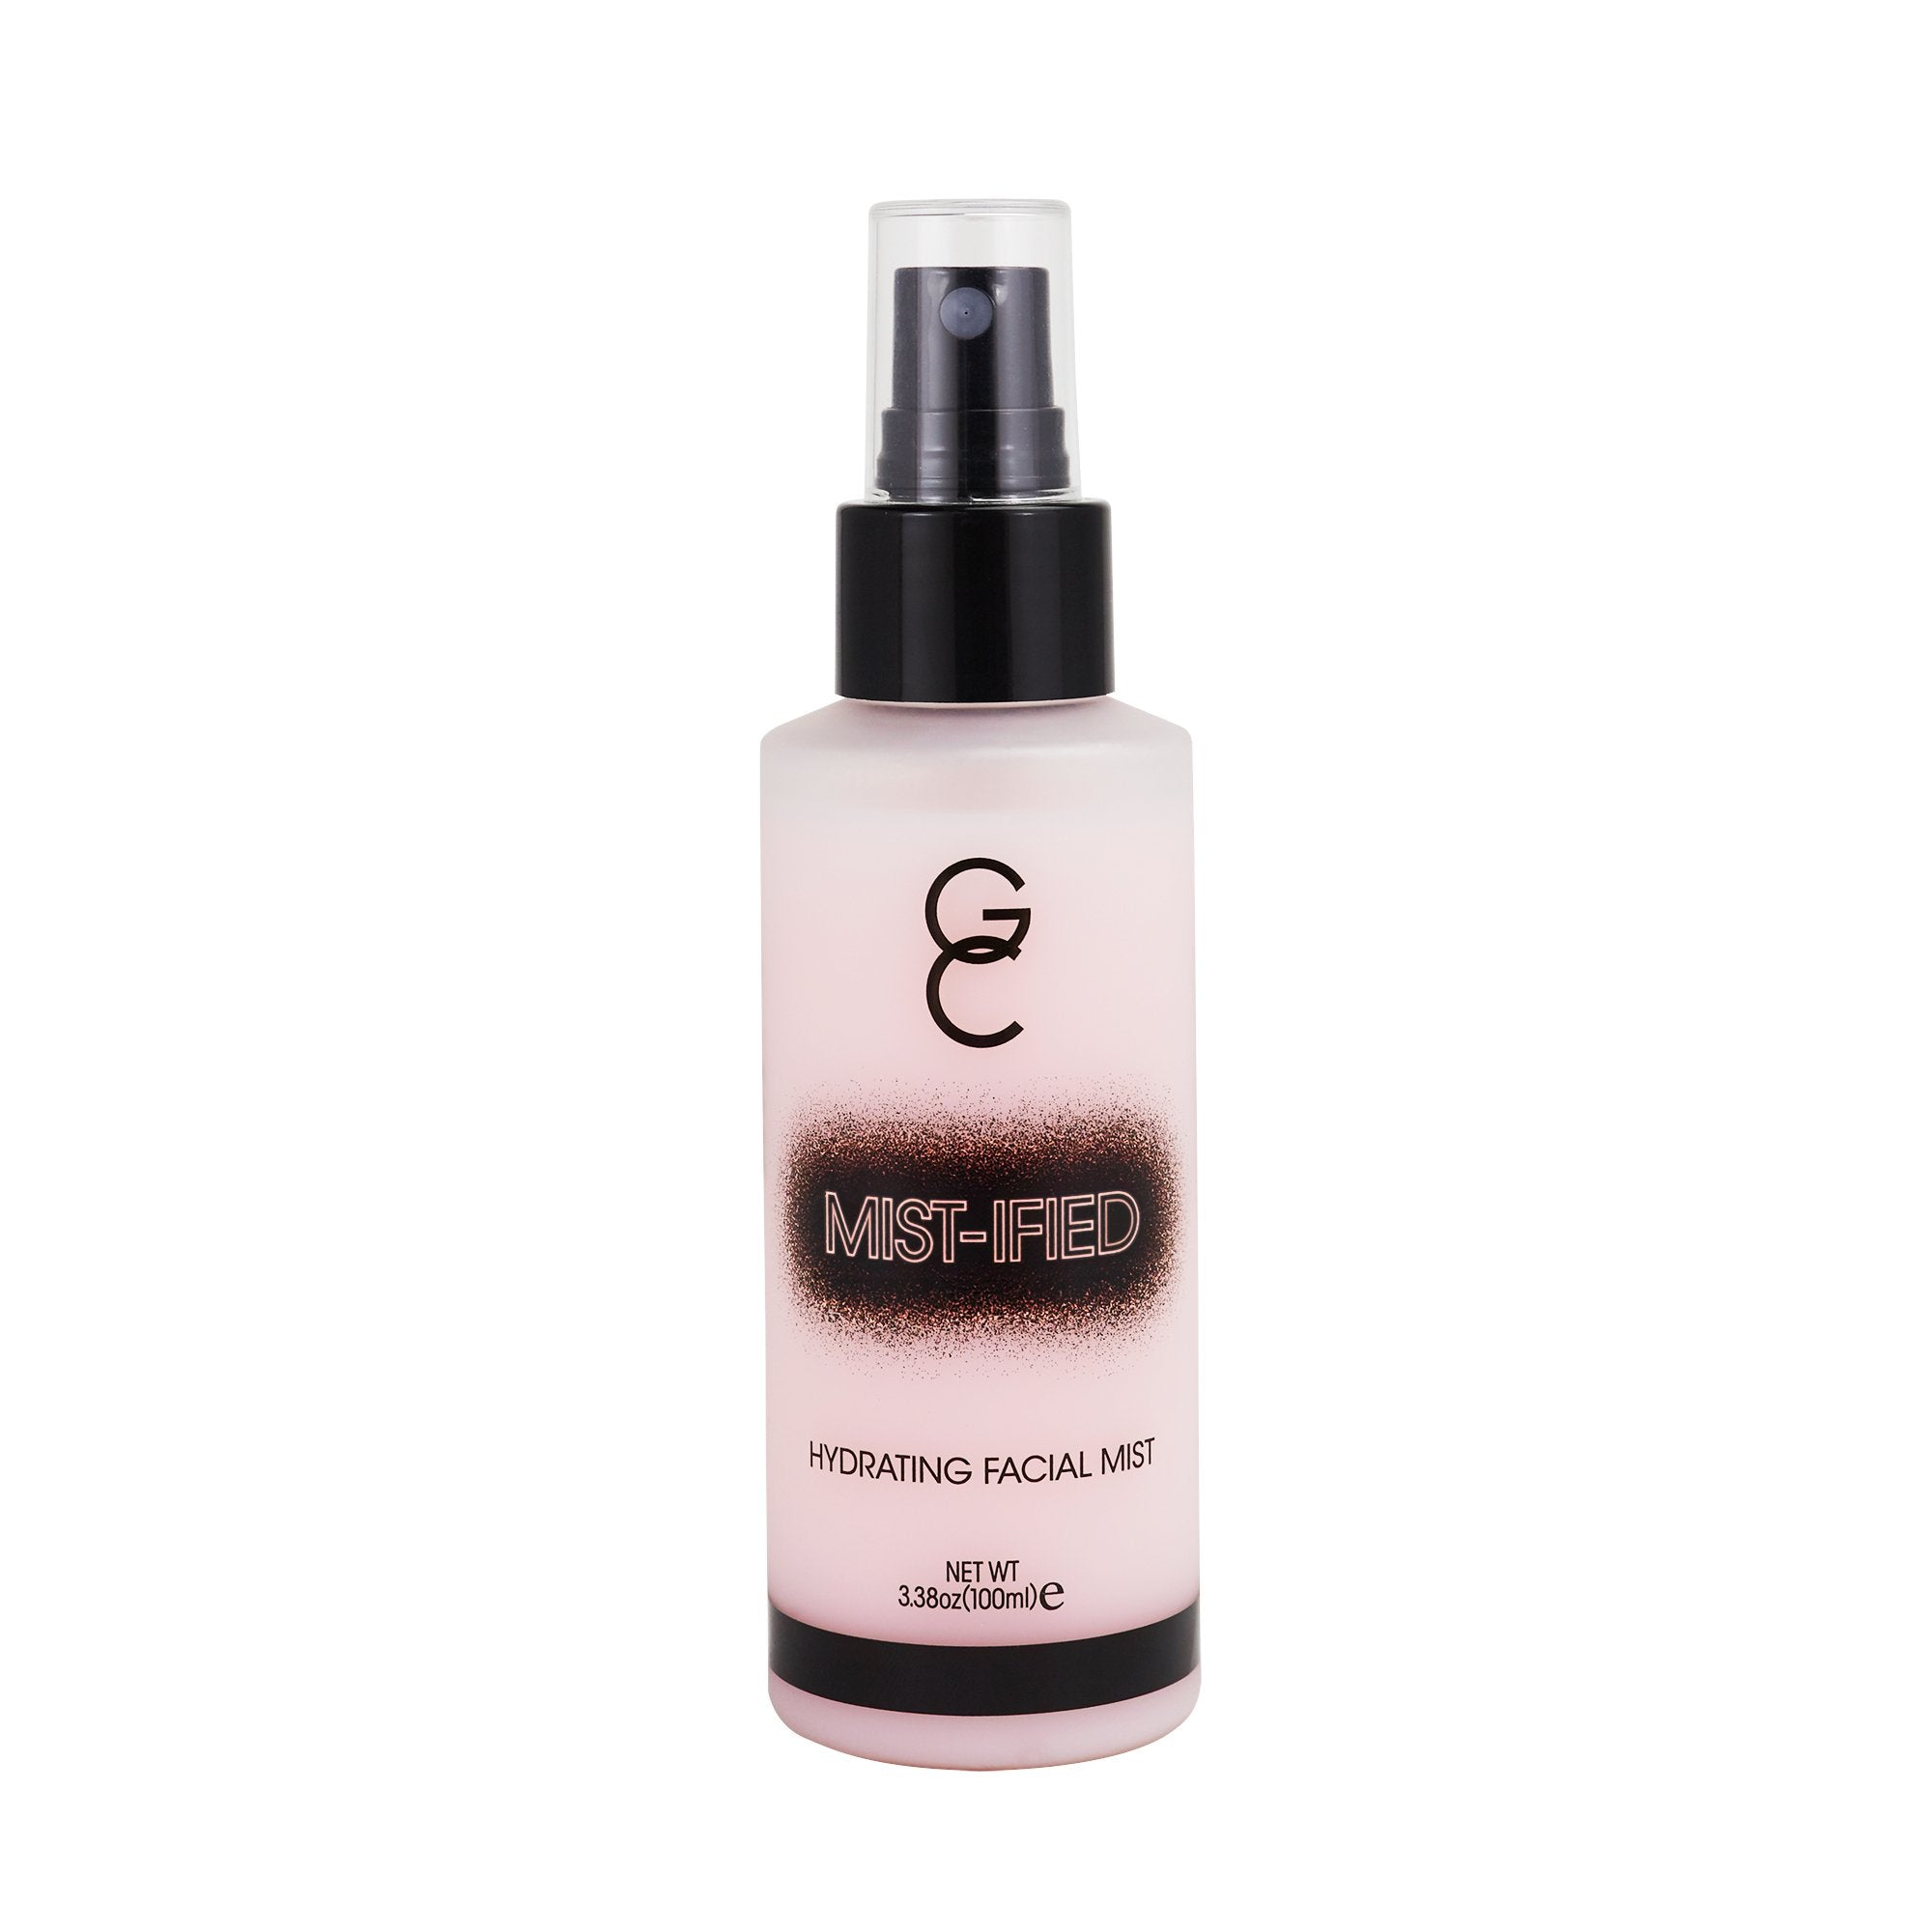 Gerard Cosmetics Mist-ified Hydrating Facial Mist - GetDollied USA